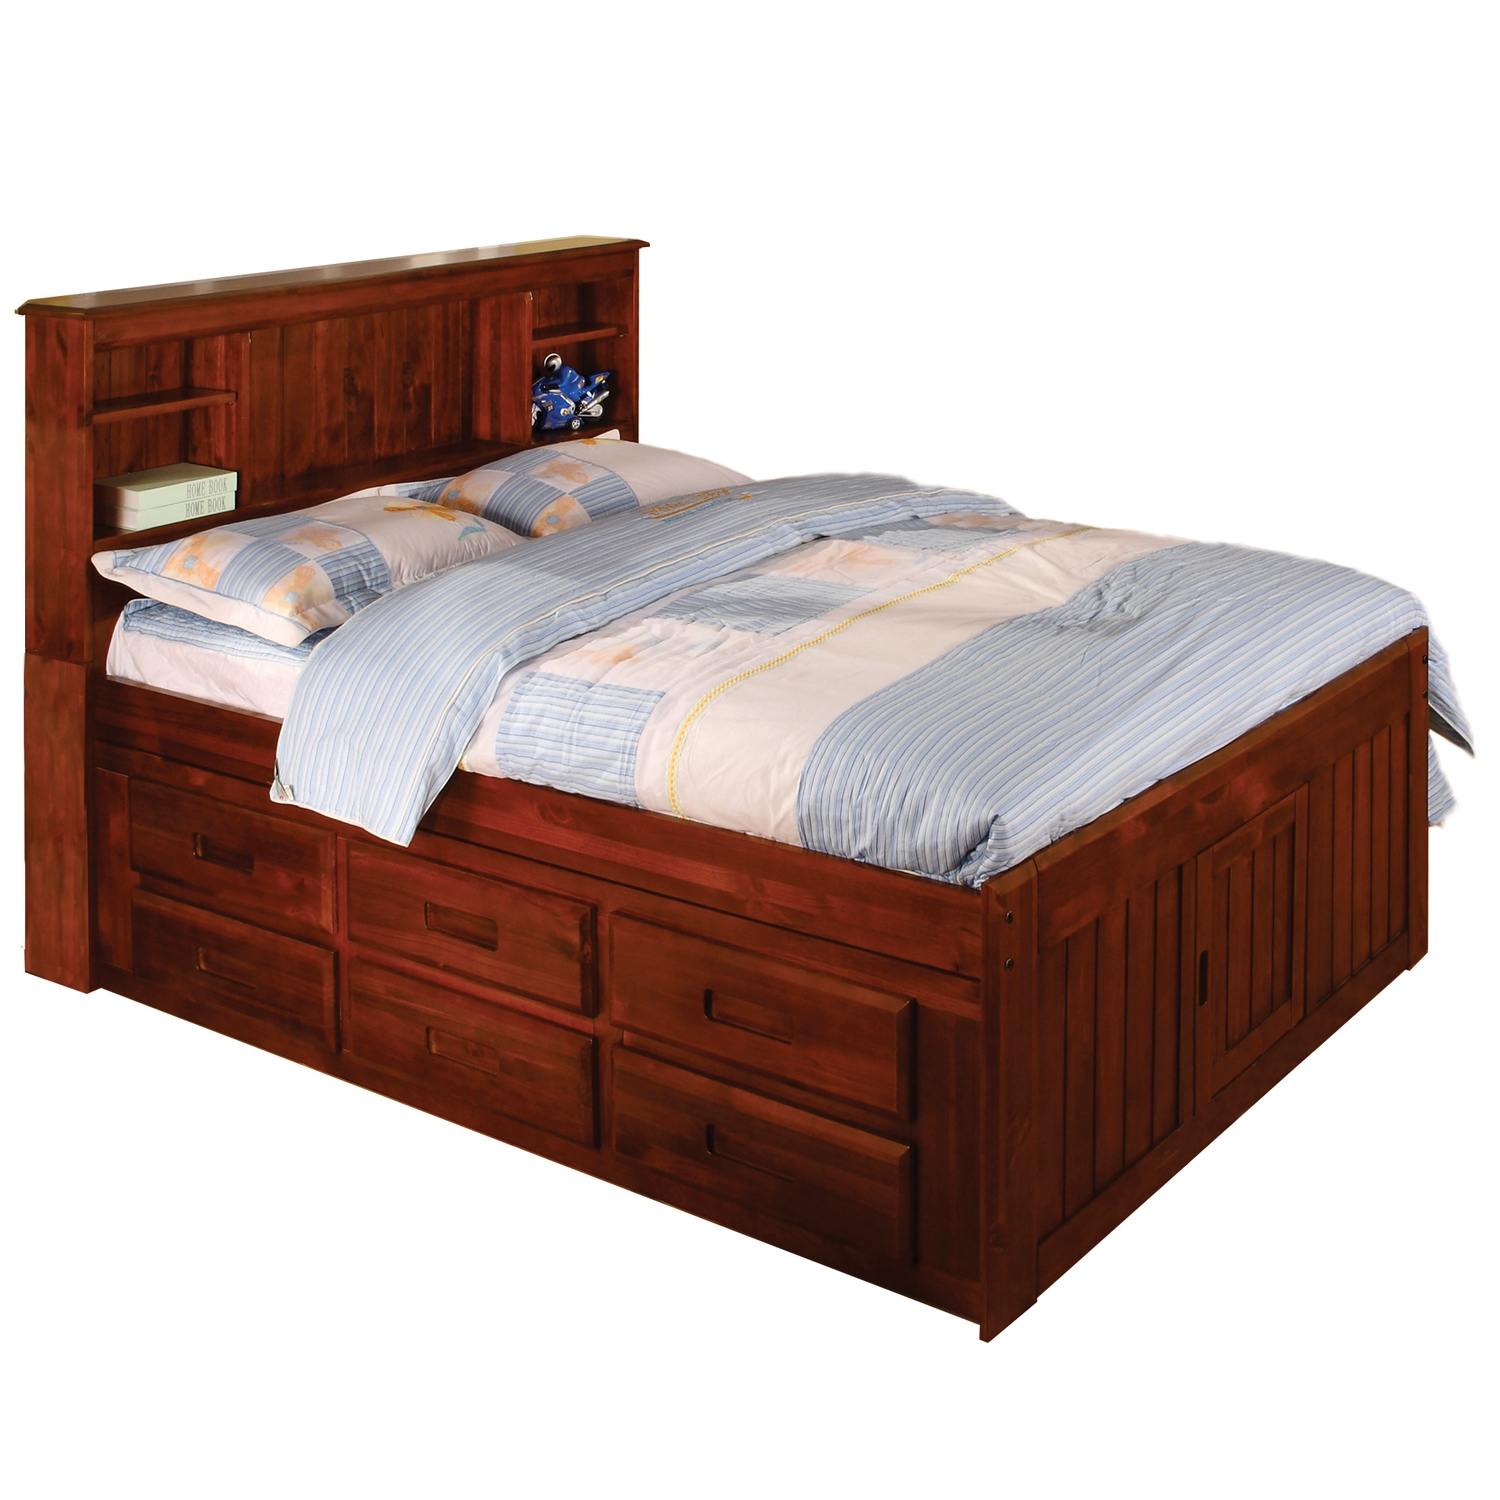 Twin Bed Frame With Drawers Underneath